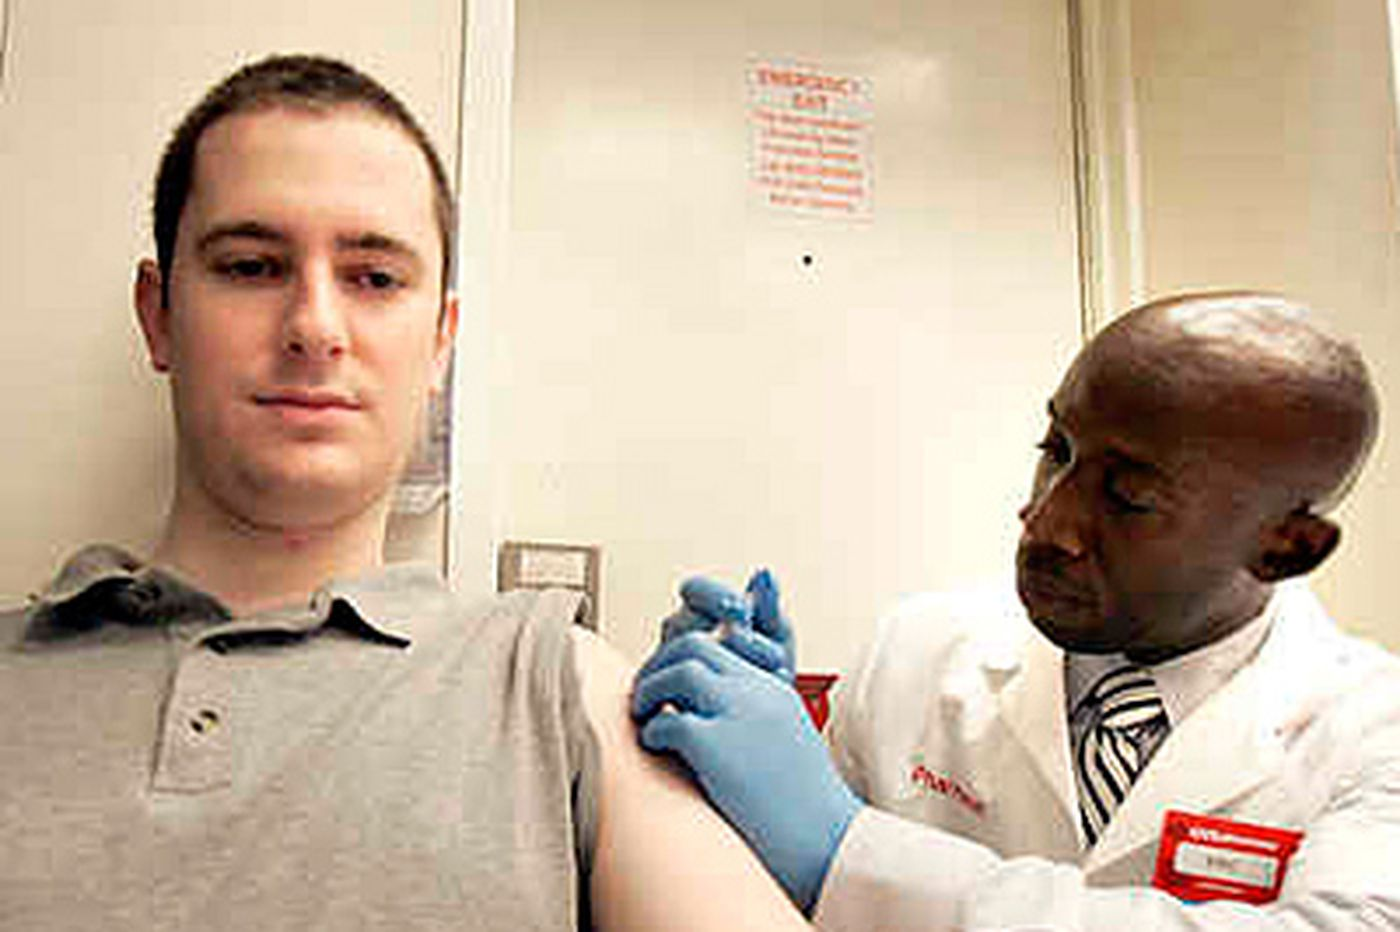 Flu is on the rise in the Philly area, but there is still time to get the shot